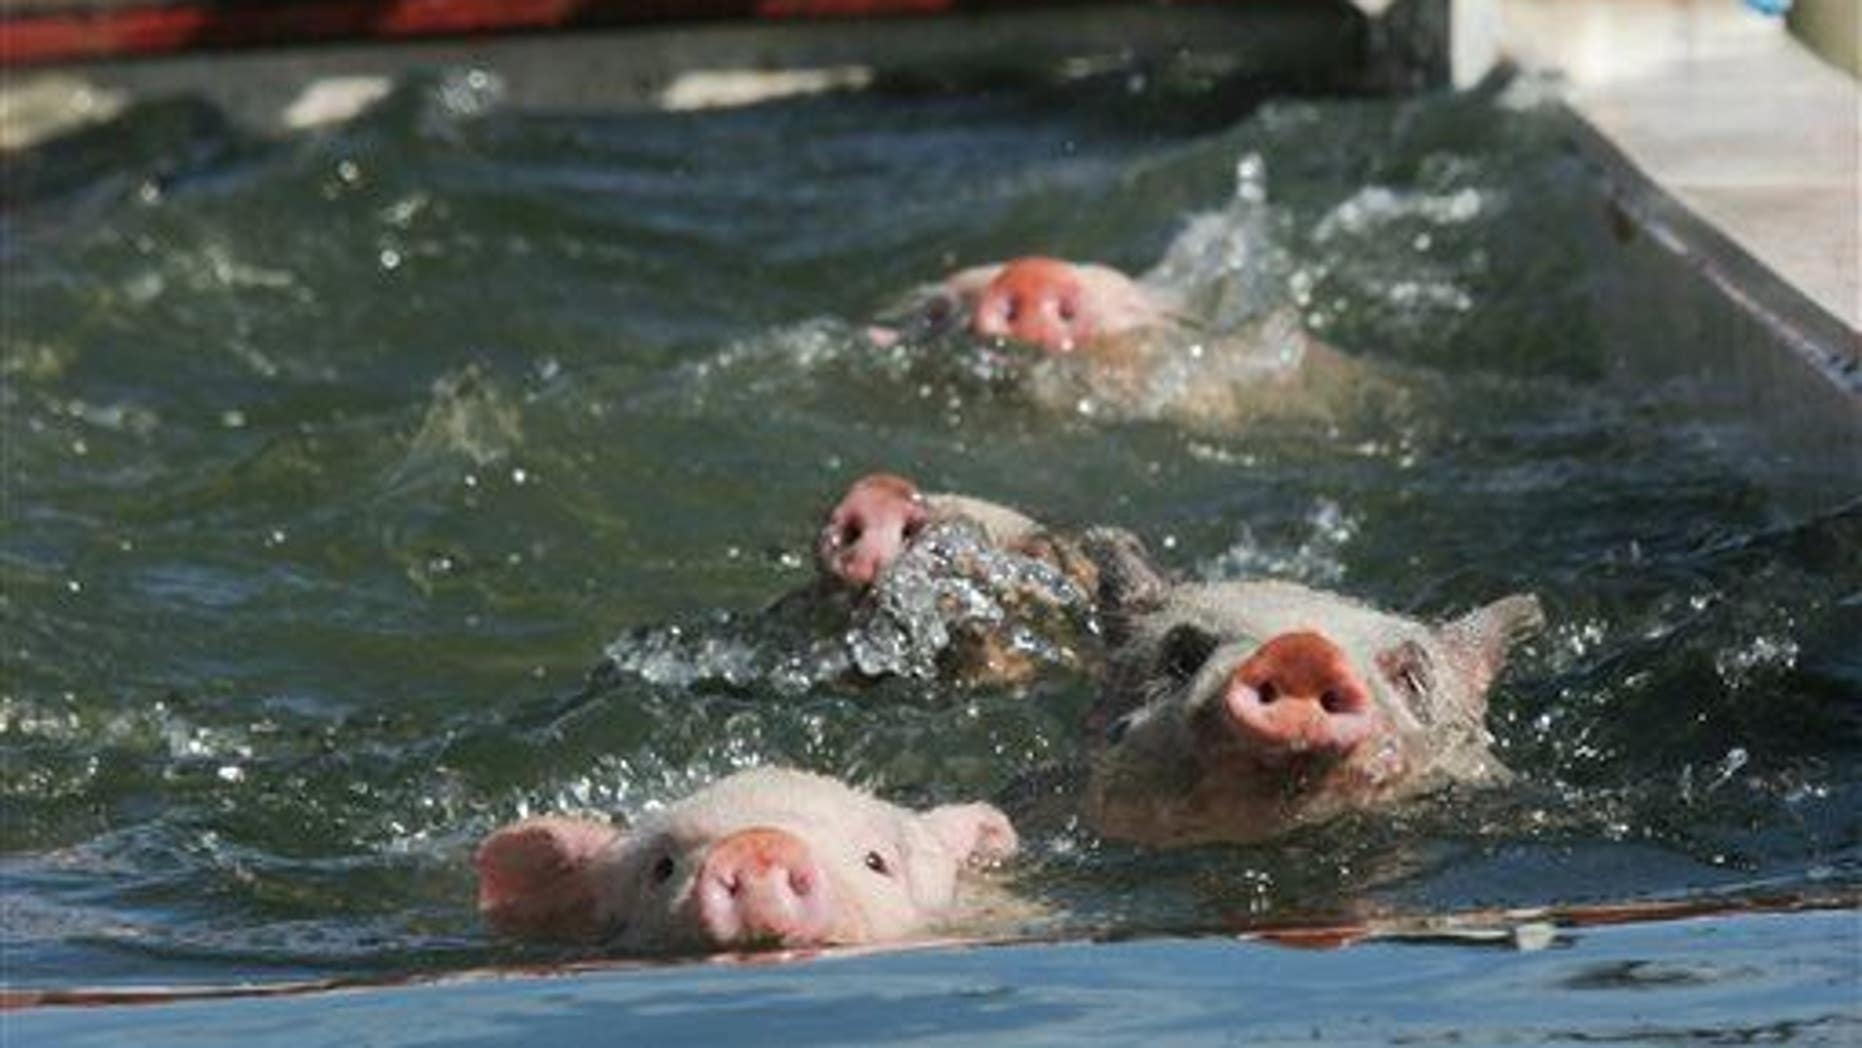 Four pigs not from Pig Beach swim across a trough of water in McDonough Ga.